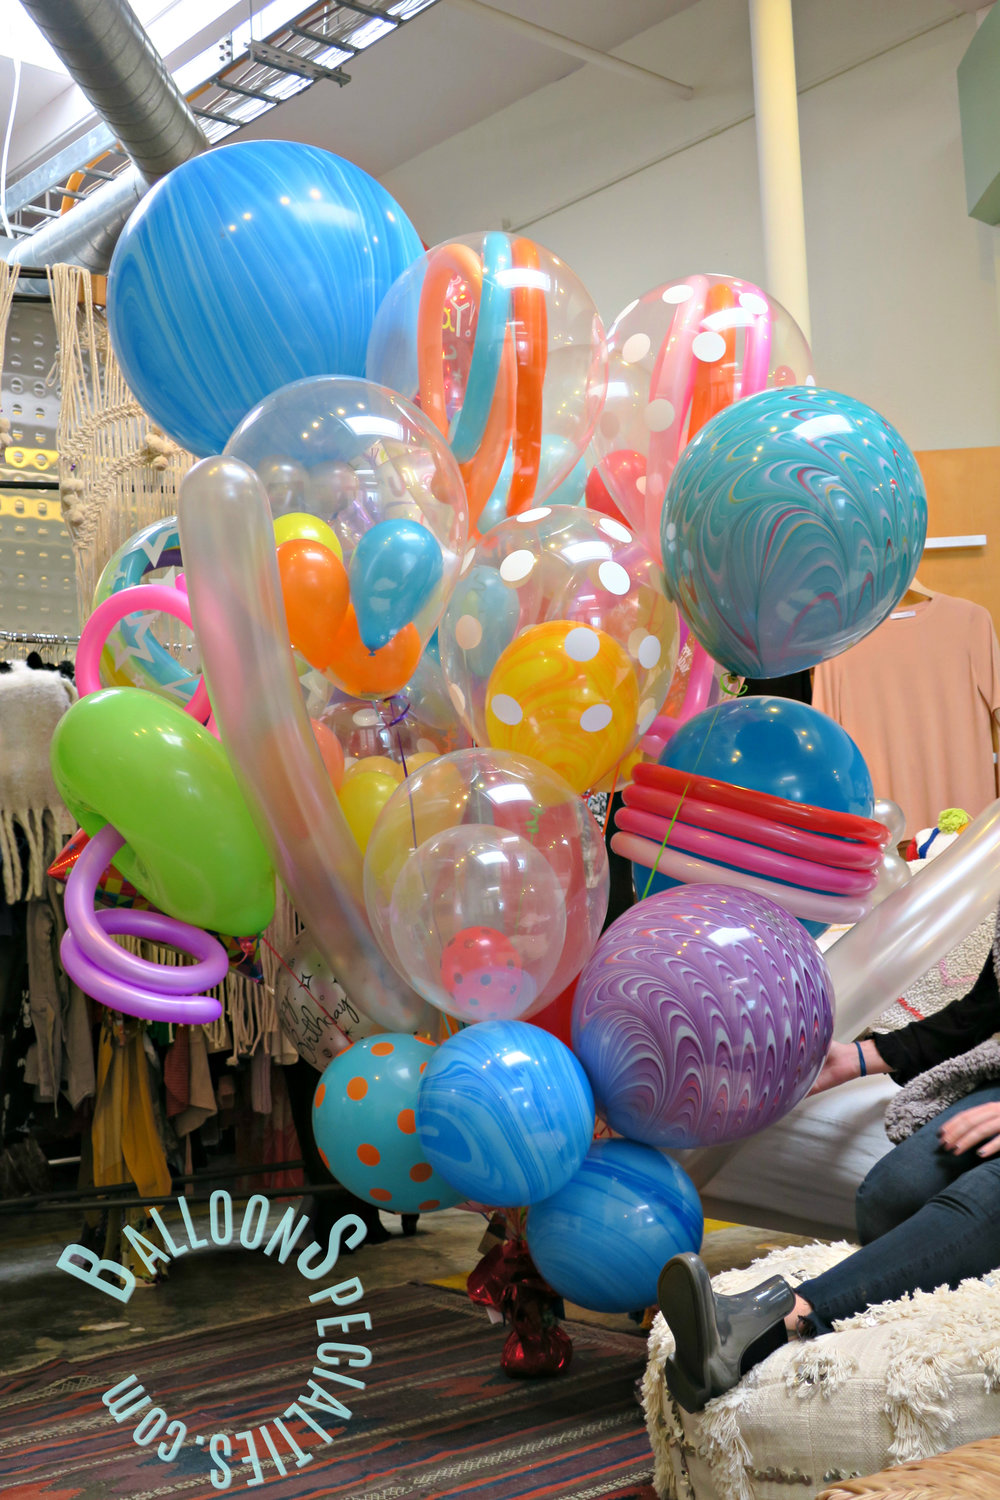 Send Birthday Balloons - Santa Rosa Balloon Bouquet Delivery.jpg